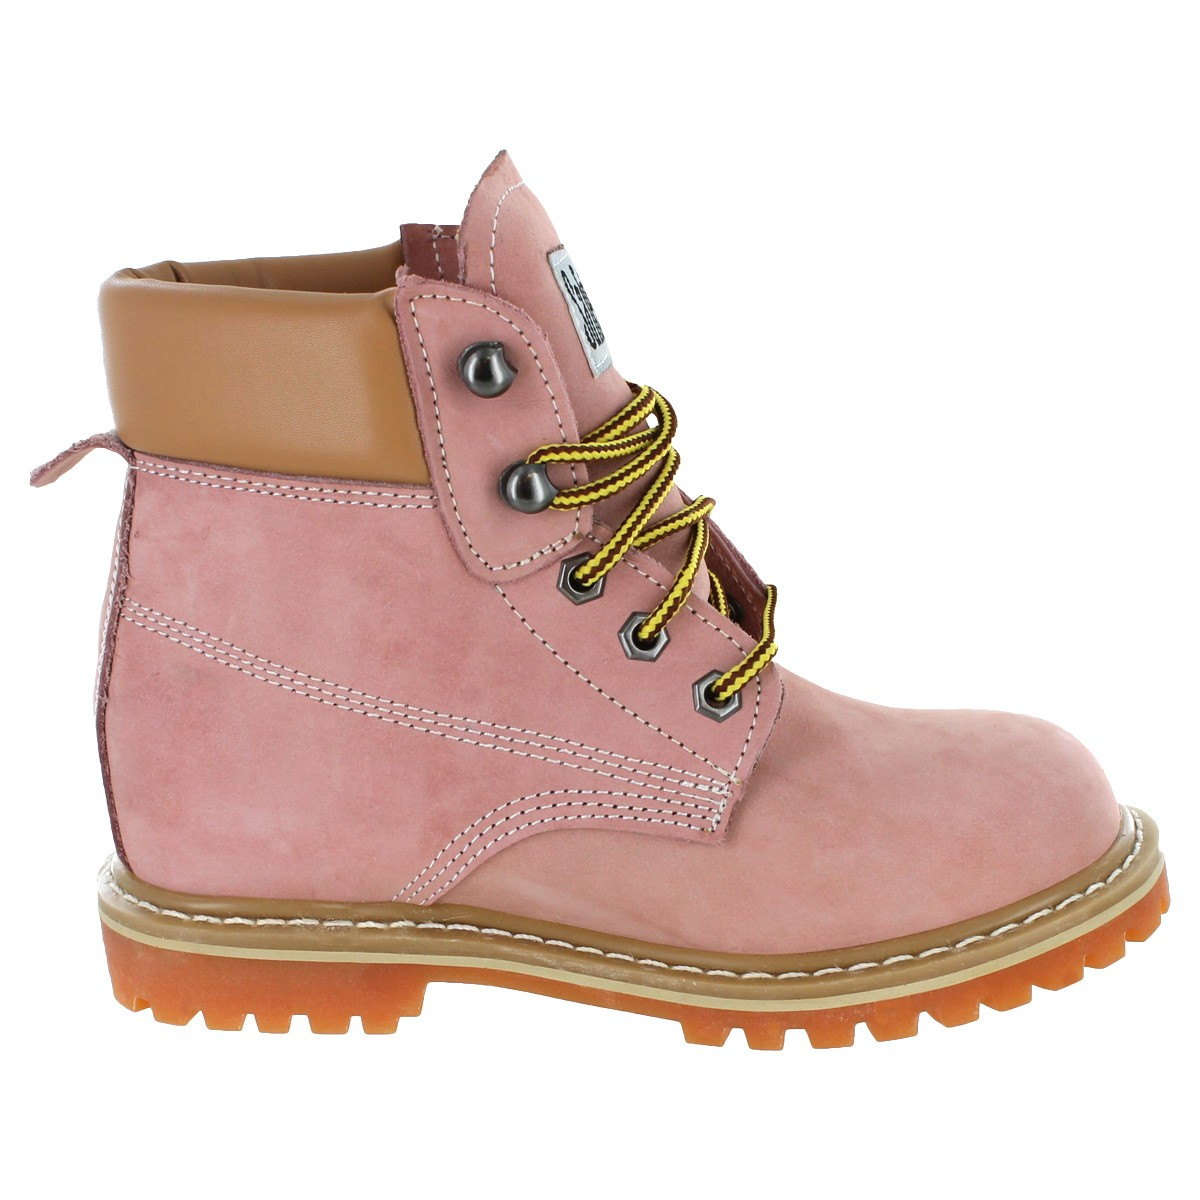 Luxury SafetyGirl Steel Toe Waterproof Womens Work Boots Light Pink Shoes